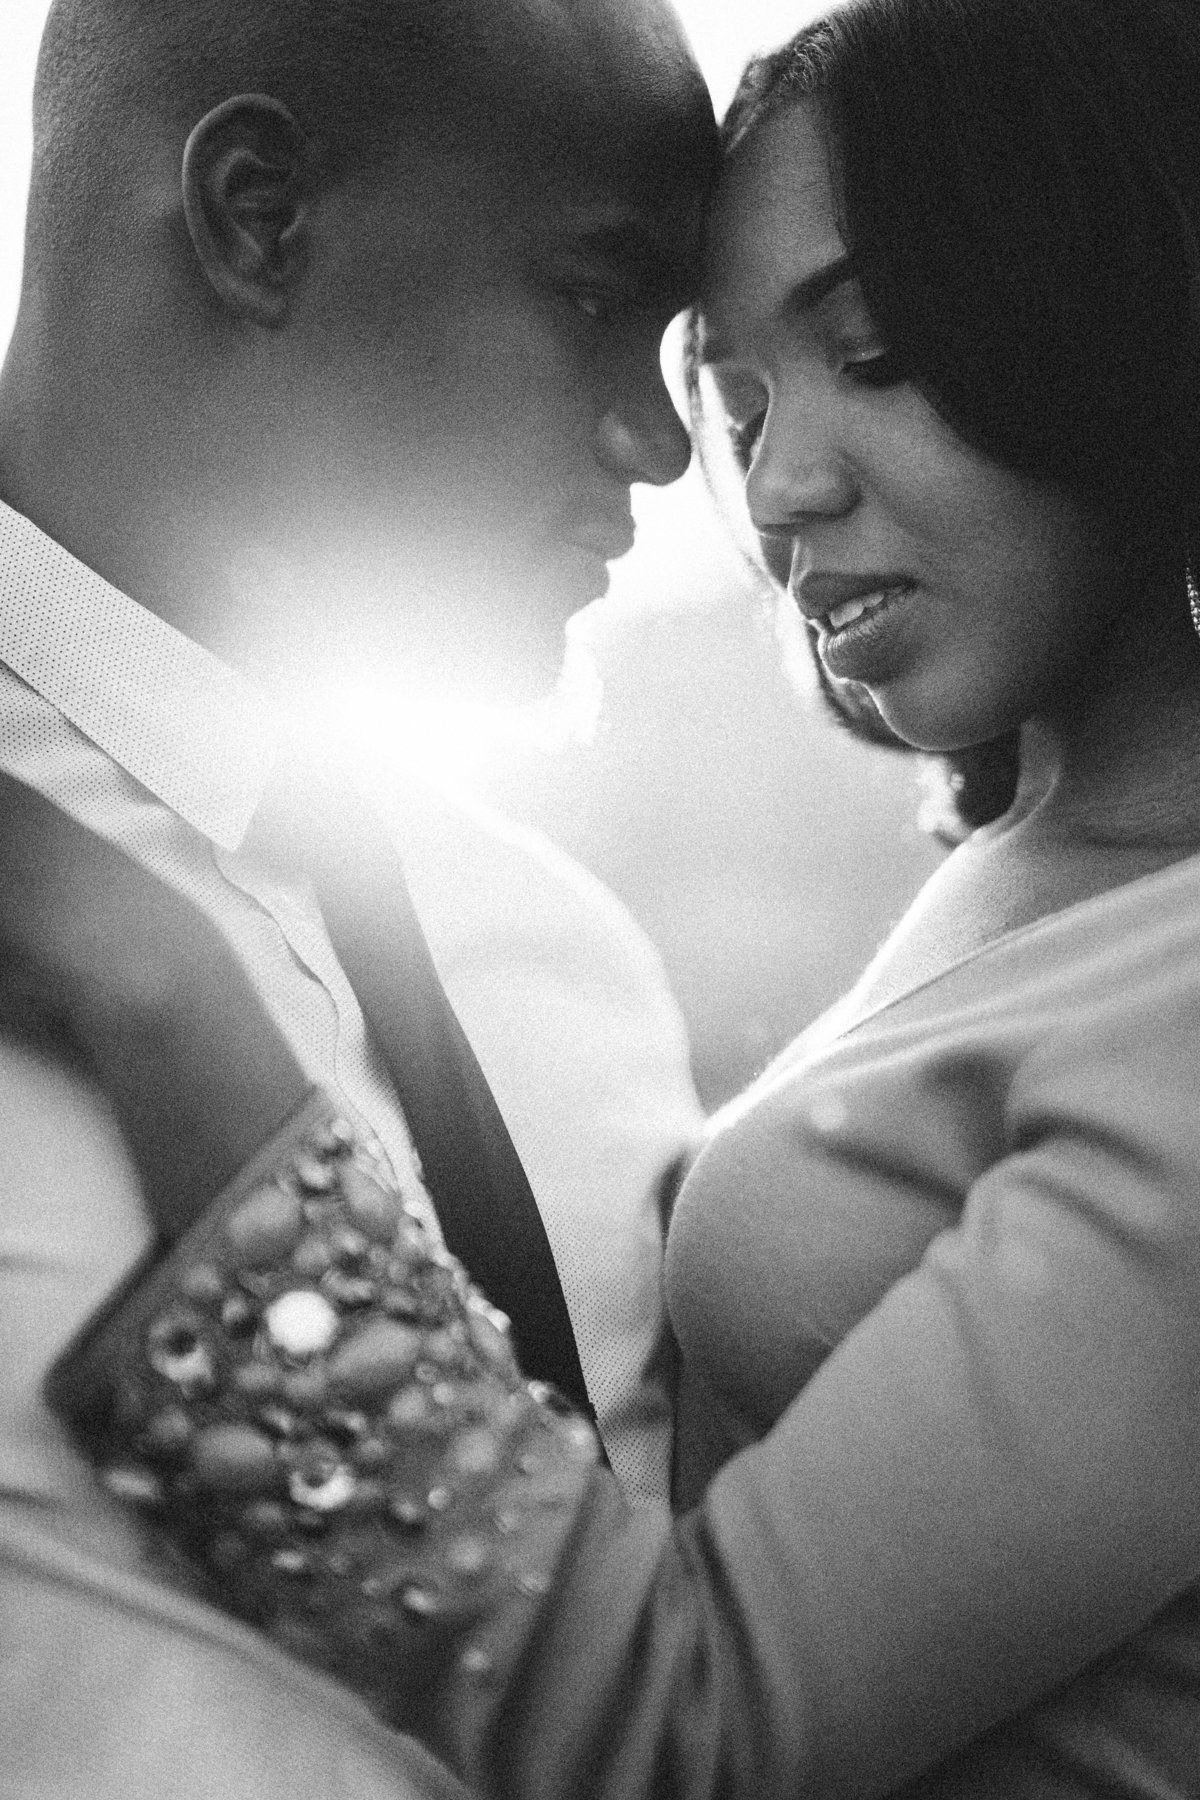 joy_monet_bryan_durham_engagement_2017-11